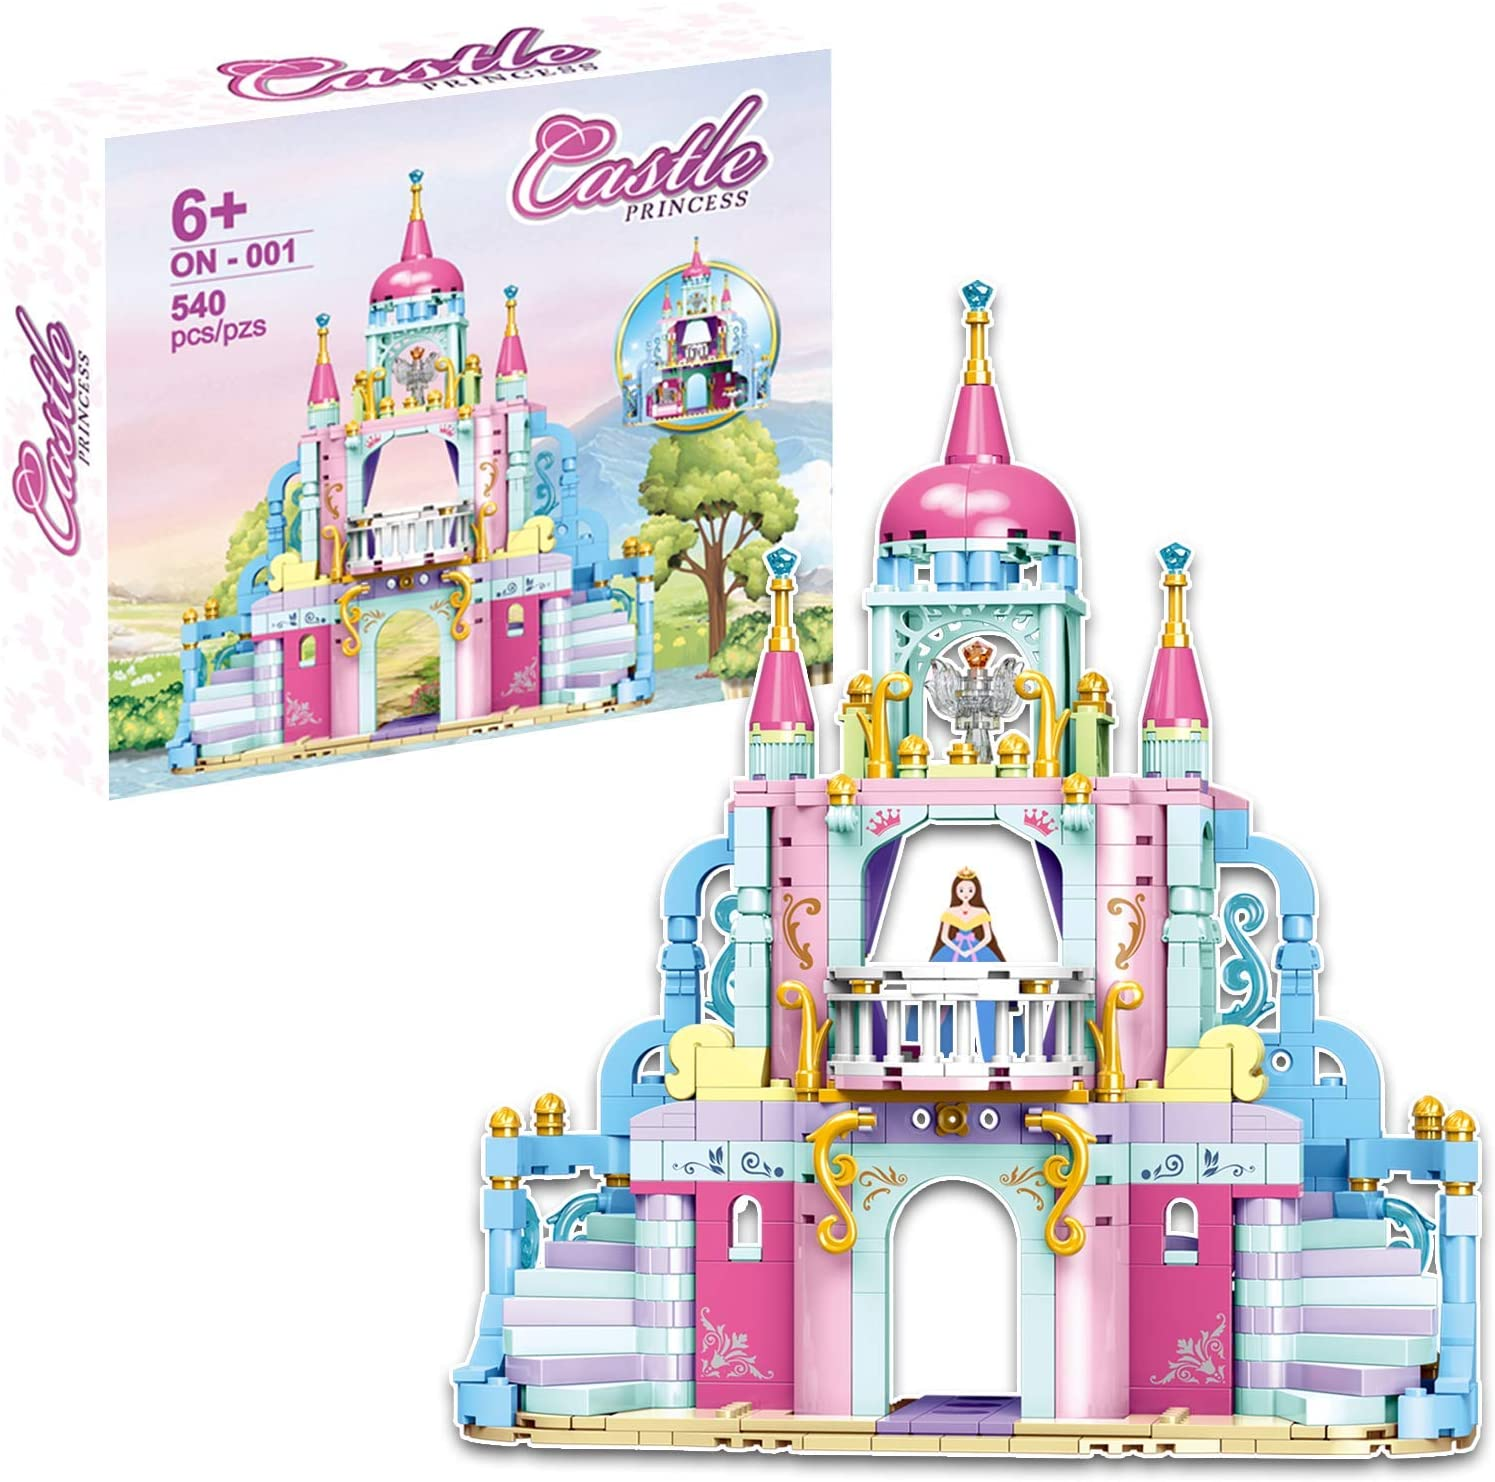 540 Pcs STEM Fun Princess Tower,Makes a Great Birthday for Kids who Loved Castle,Education Construction Building Bricks for Girls Age 6 7 8 9 10 and Up